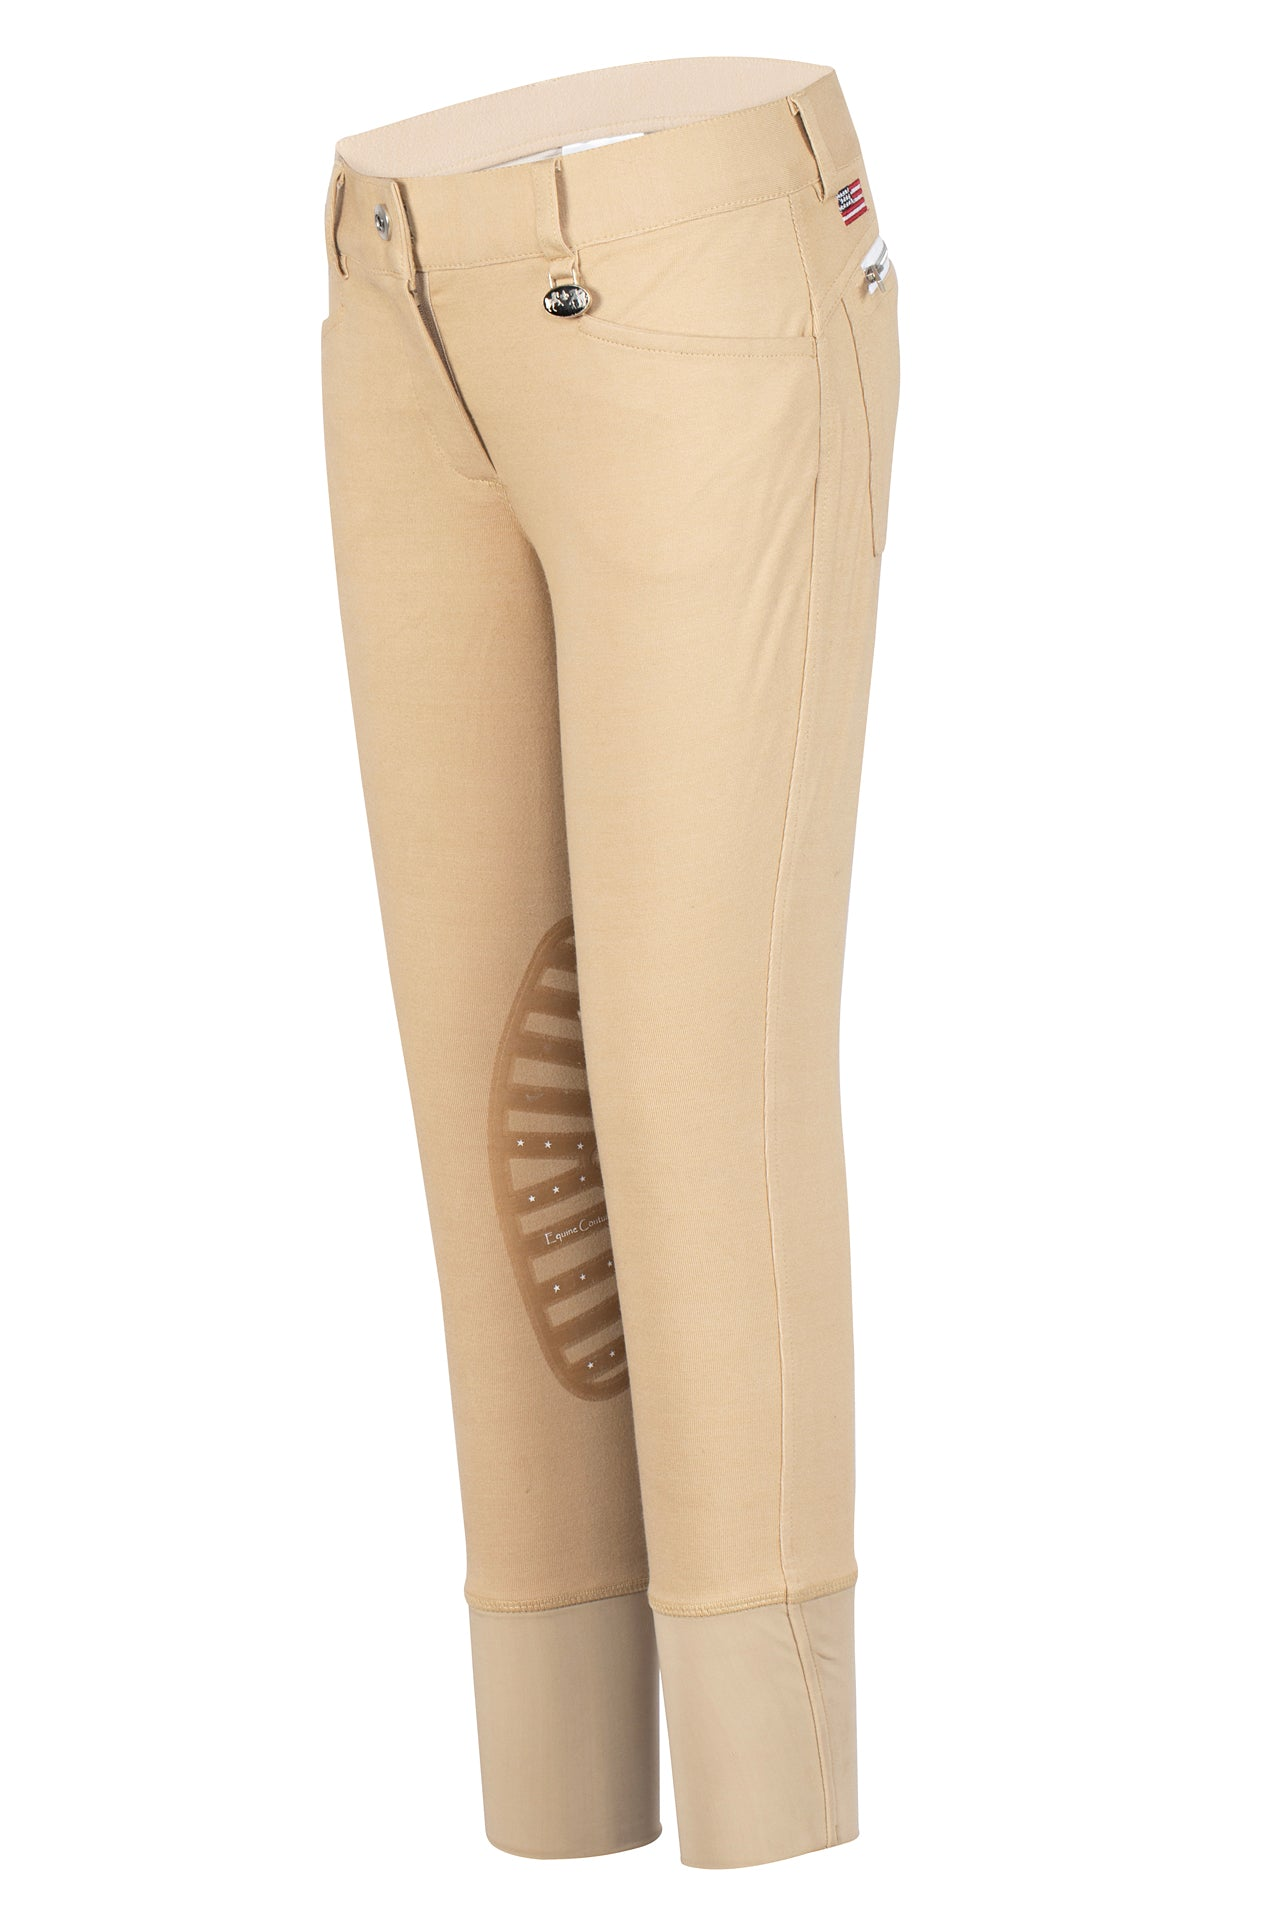 Equine Couture Children's All Star Knee Patch Breeches_922